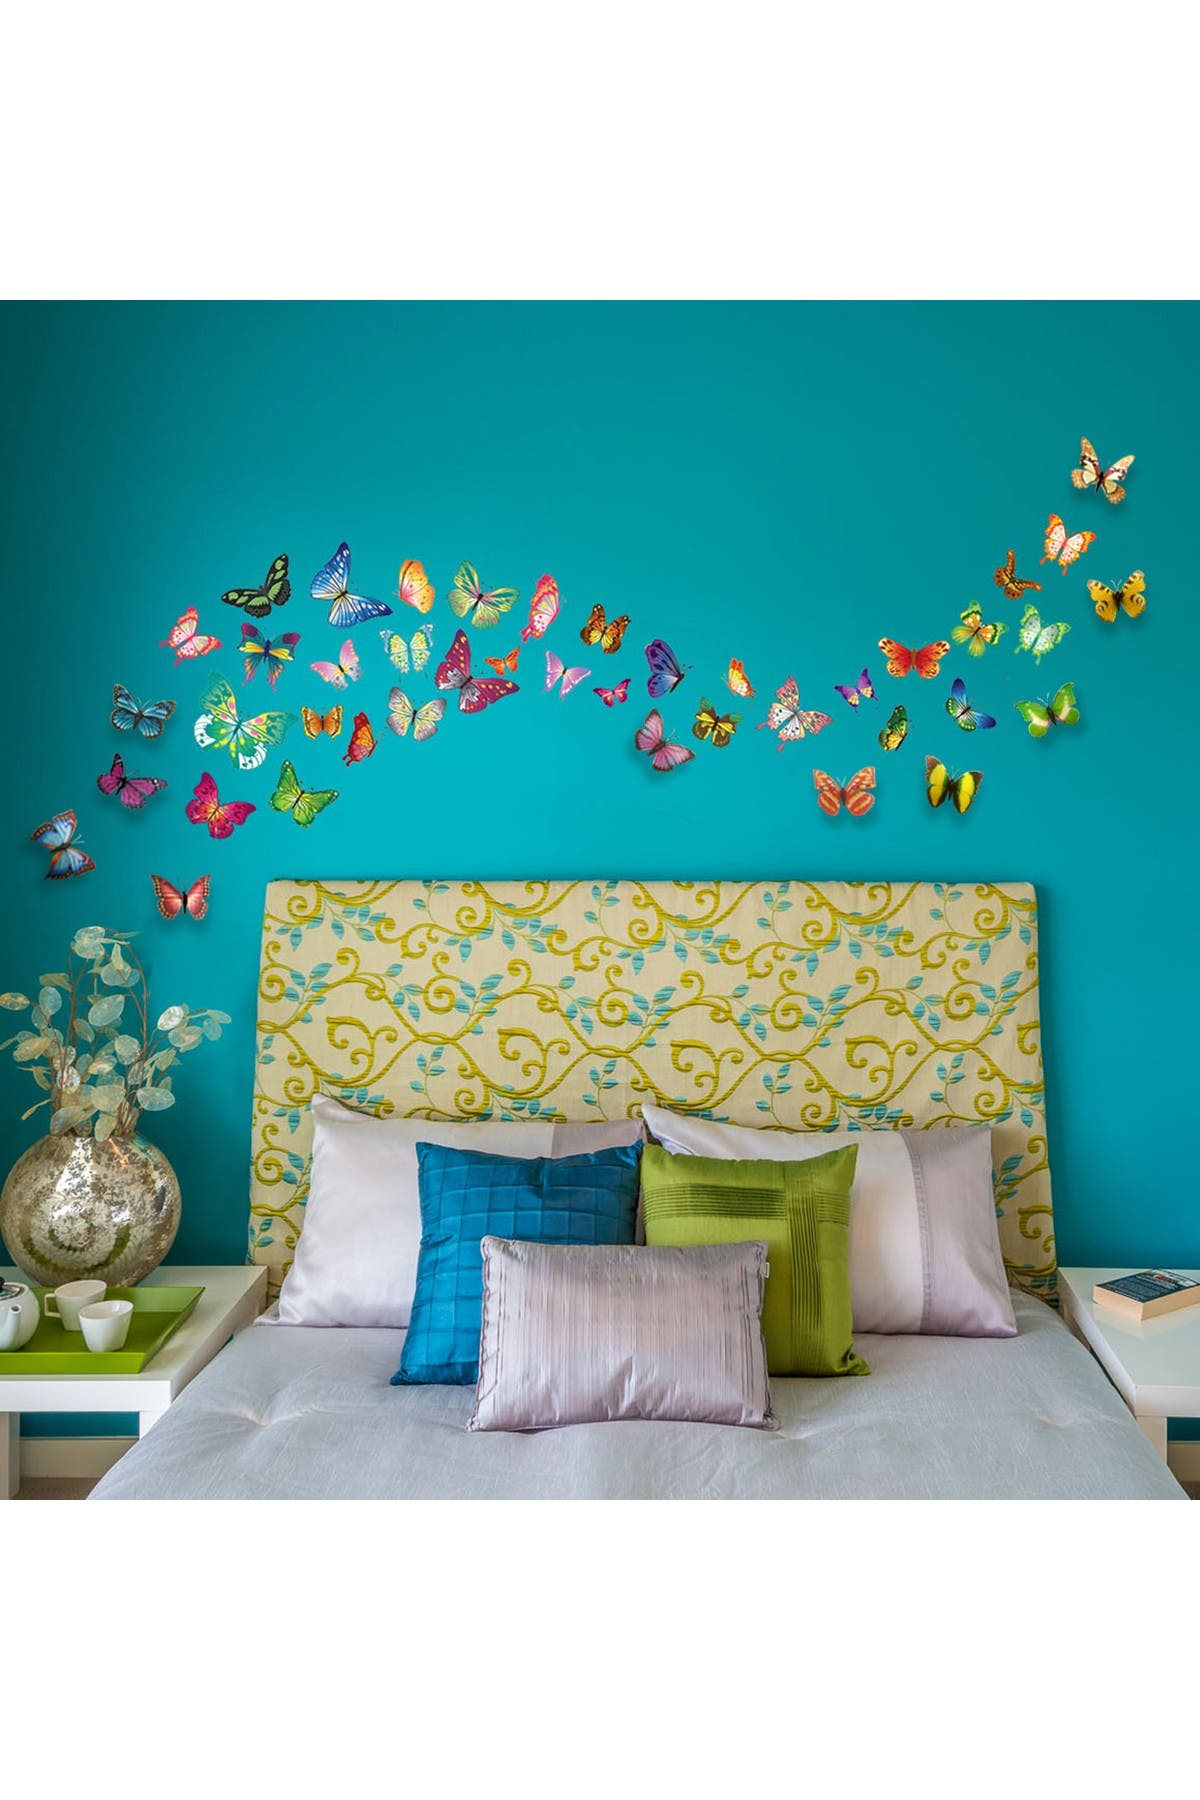 Image of WalPlus Colourful Butterflies Decal with 3D Effect